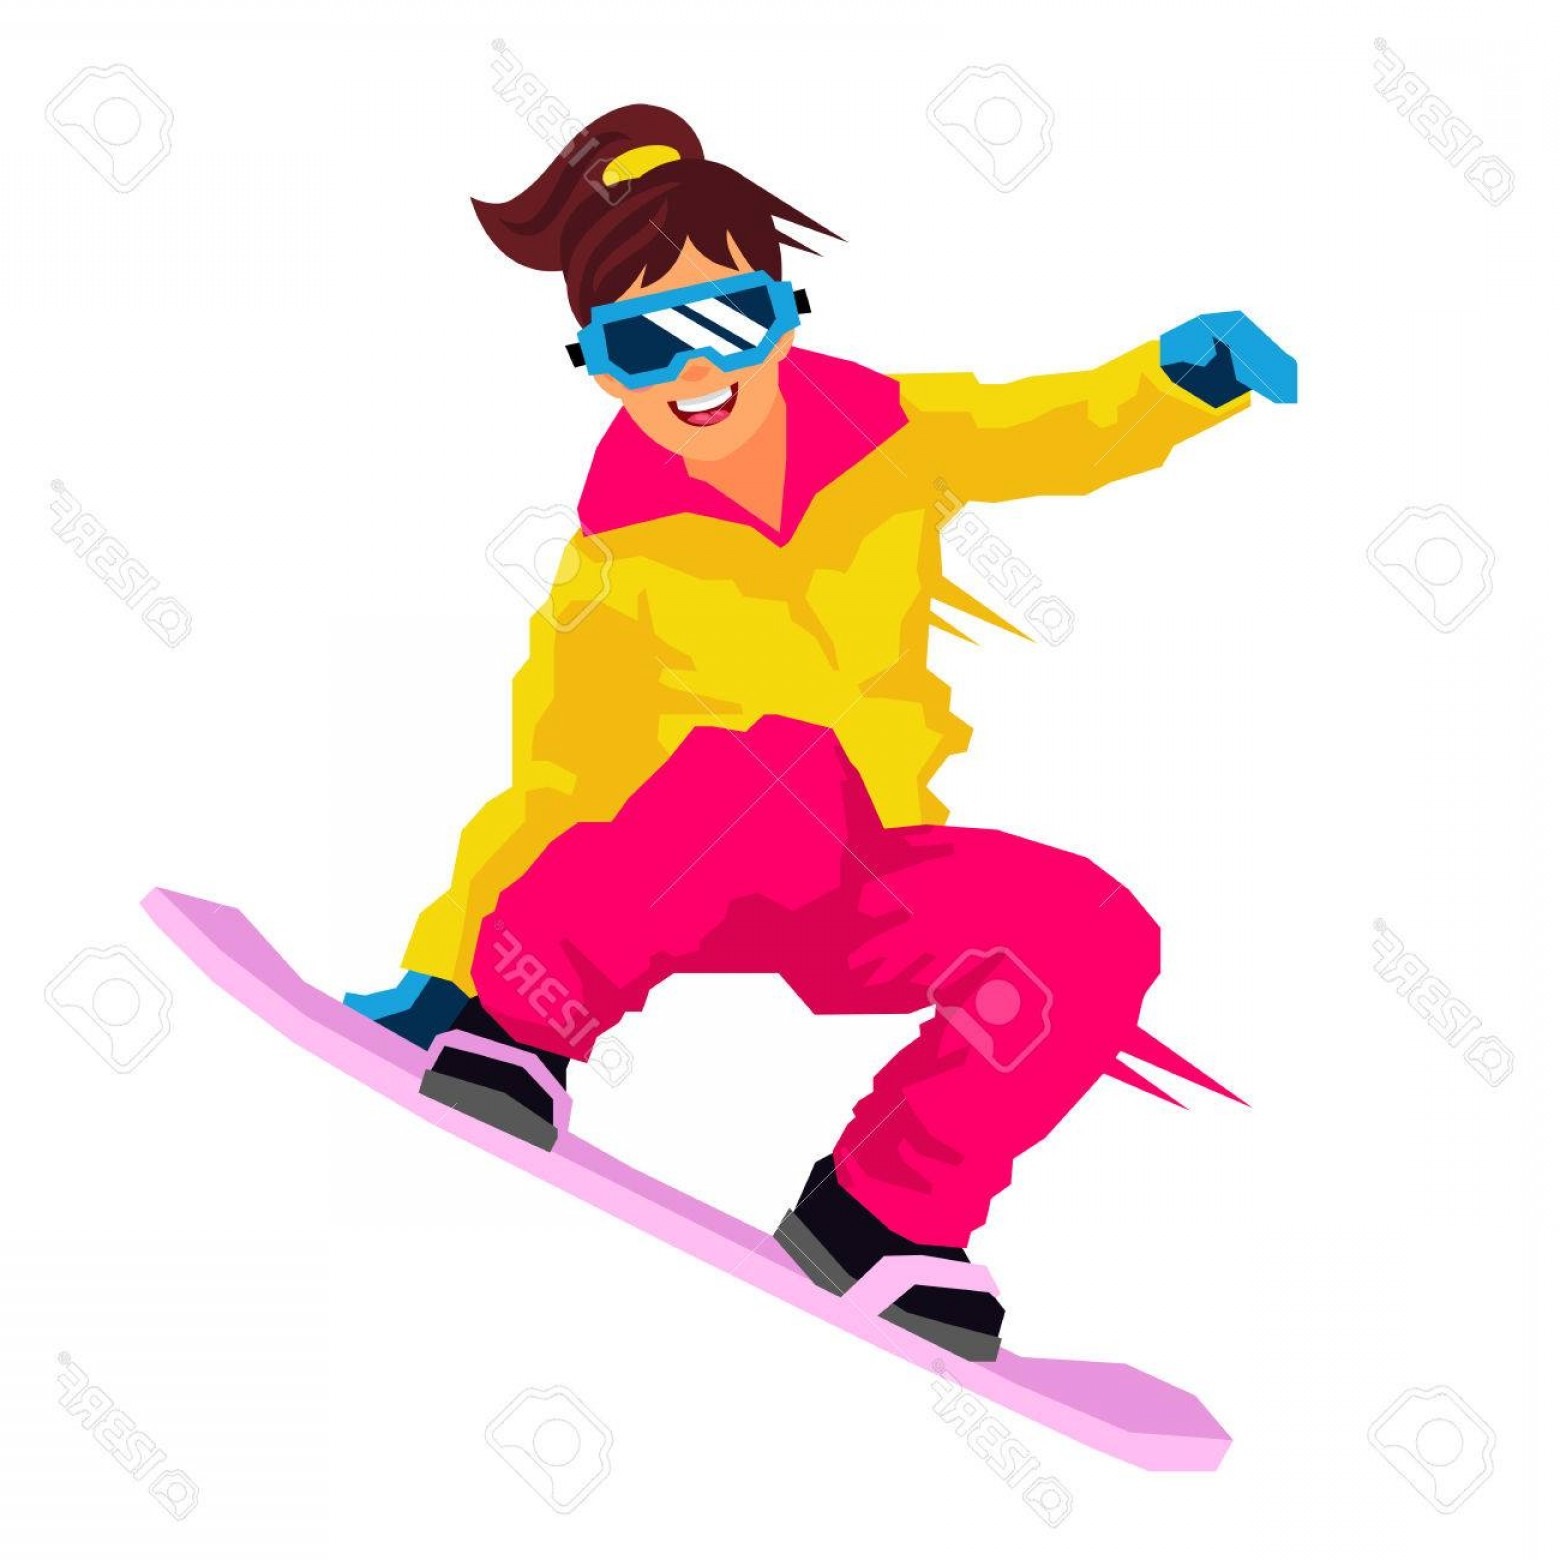 1560x1560 Photostock Vector Cool Girl Riding A Snowboard Vector Illustration